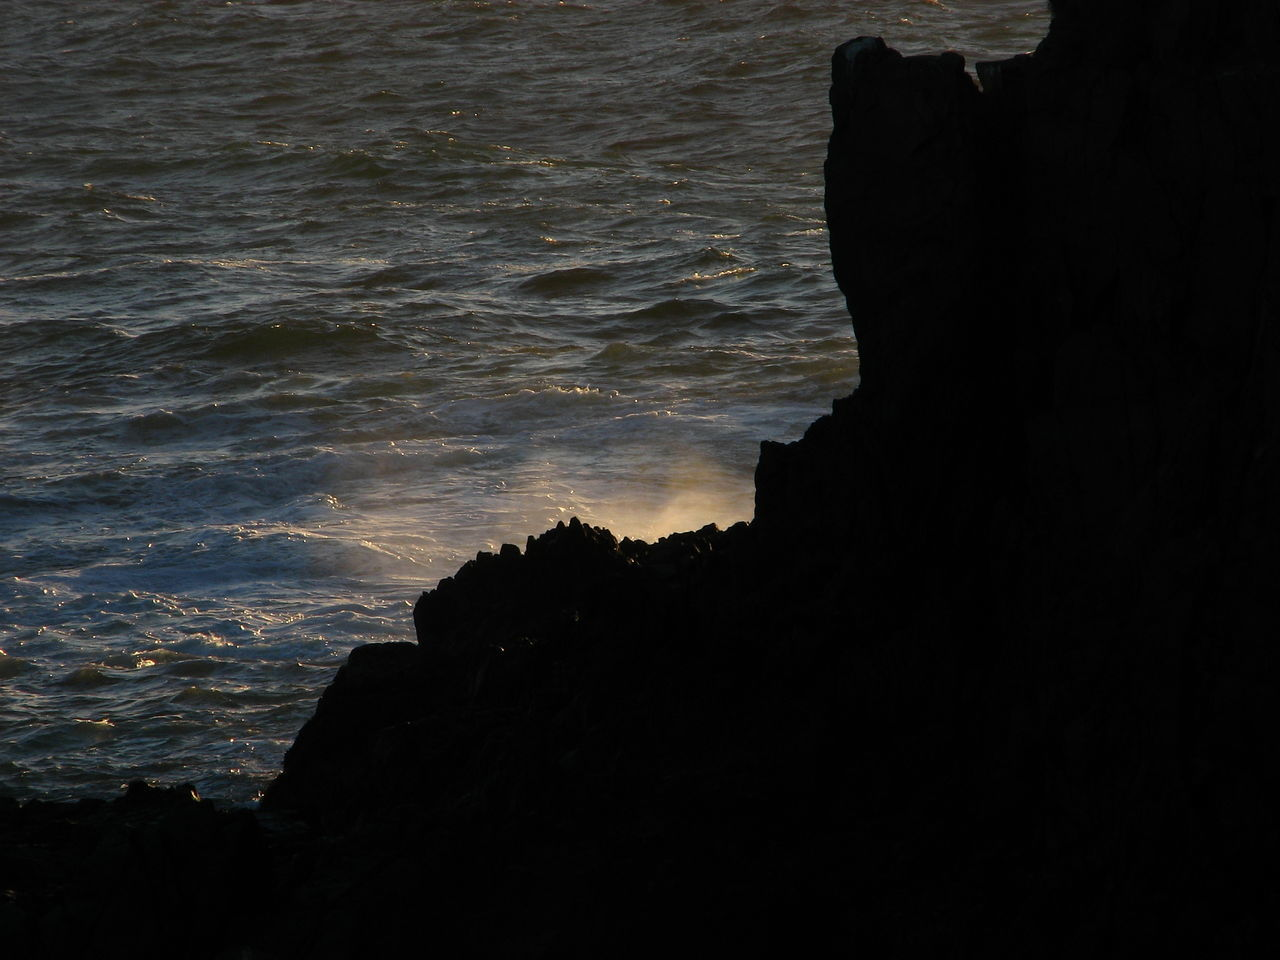 silhouette, rock formation, rock - object, nature, sea, sunset, beauty in nature, water, outdoors, no people, sky, scenics, travel destinations, wave, day